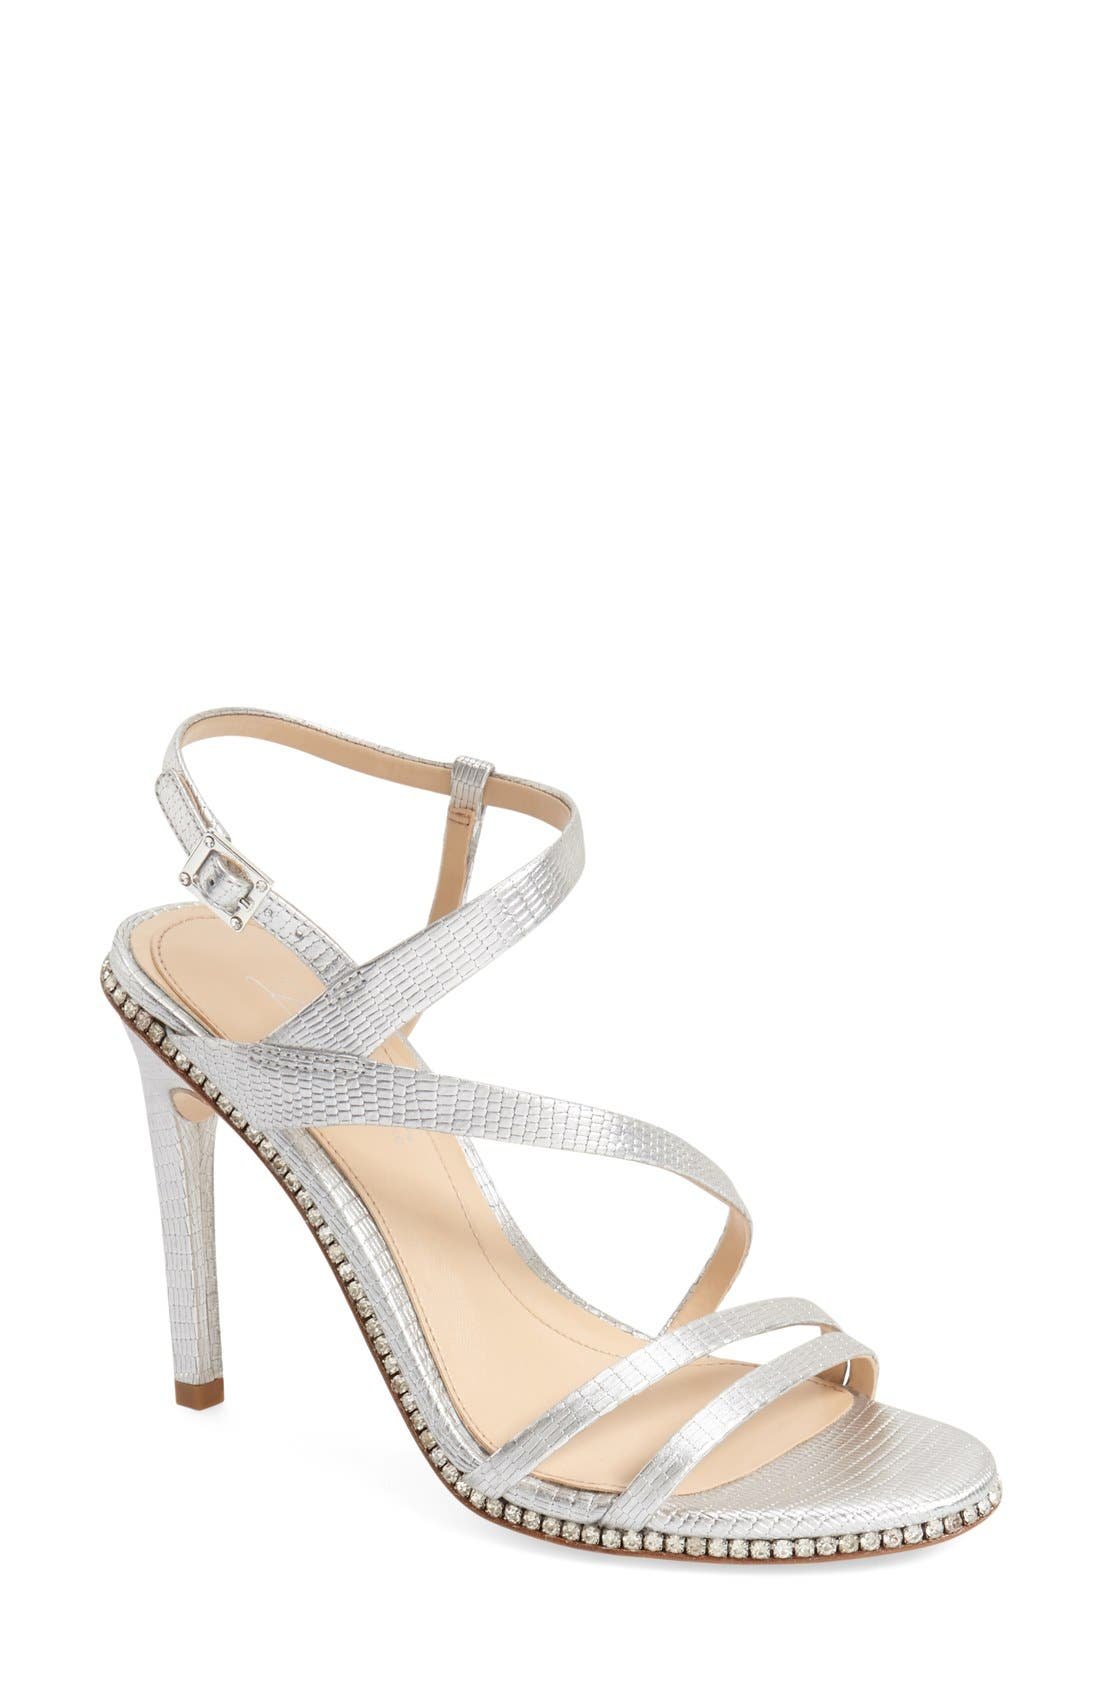 IMAGINE BY VINCE CAMUTO Imagine Vince Camuto 'Gian'